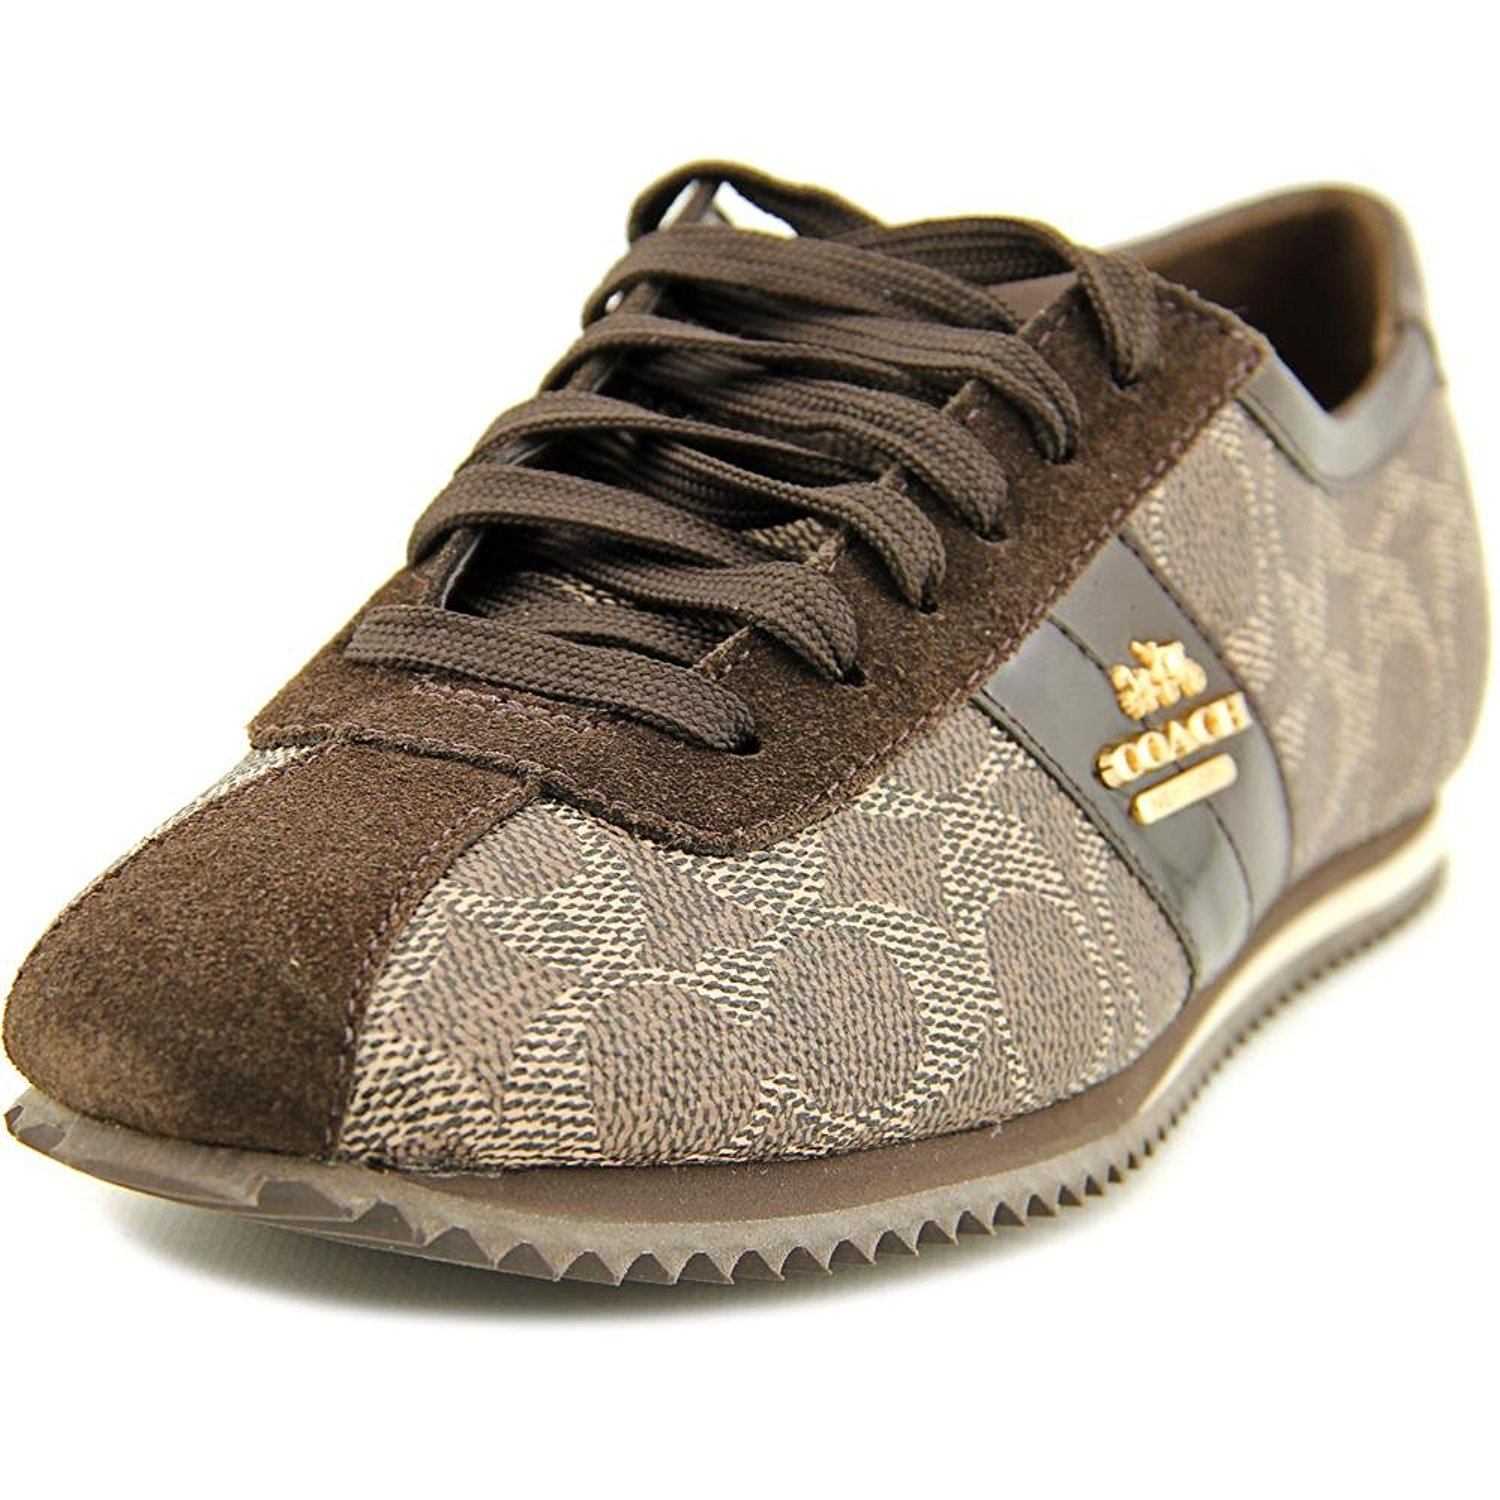 f7fb074ba9c ... shoes 1218b f94cf best price get quotations coach womens ivy signature  sneaker 5.5 91217 66ee8 ...